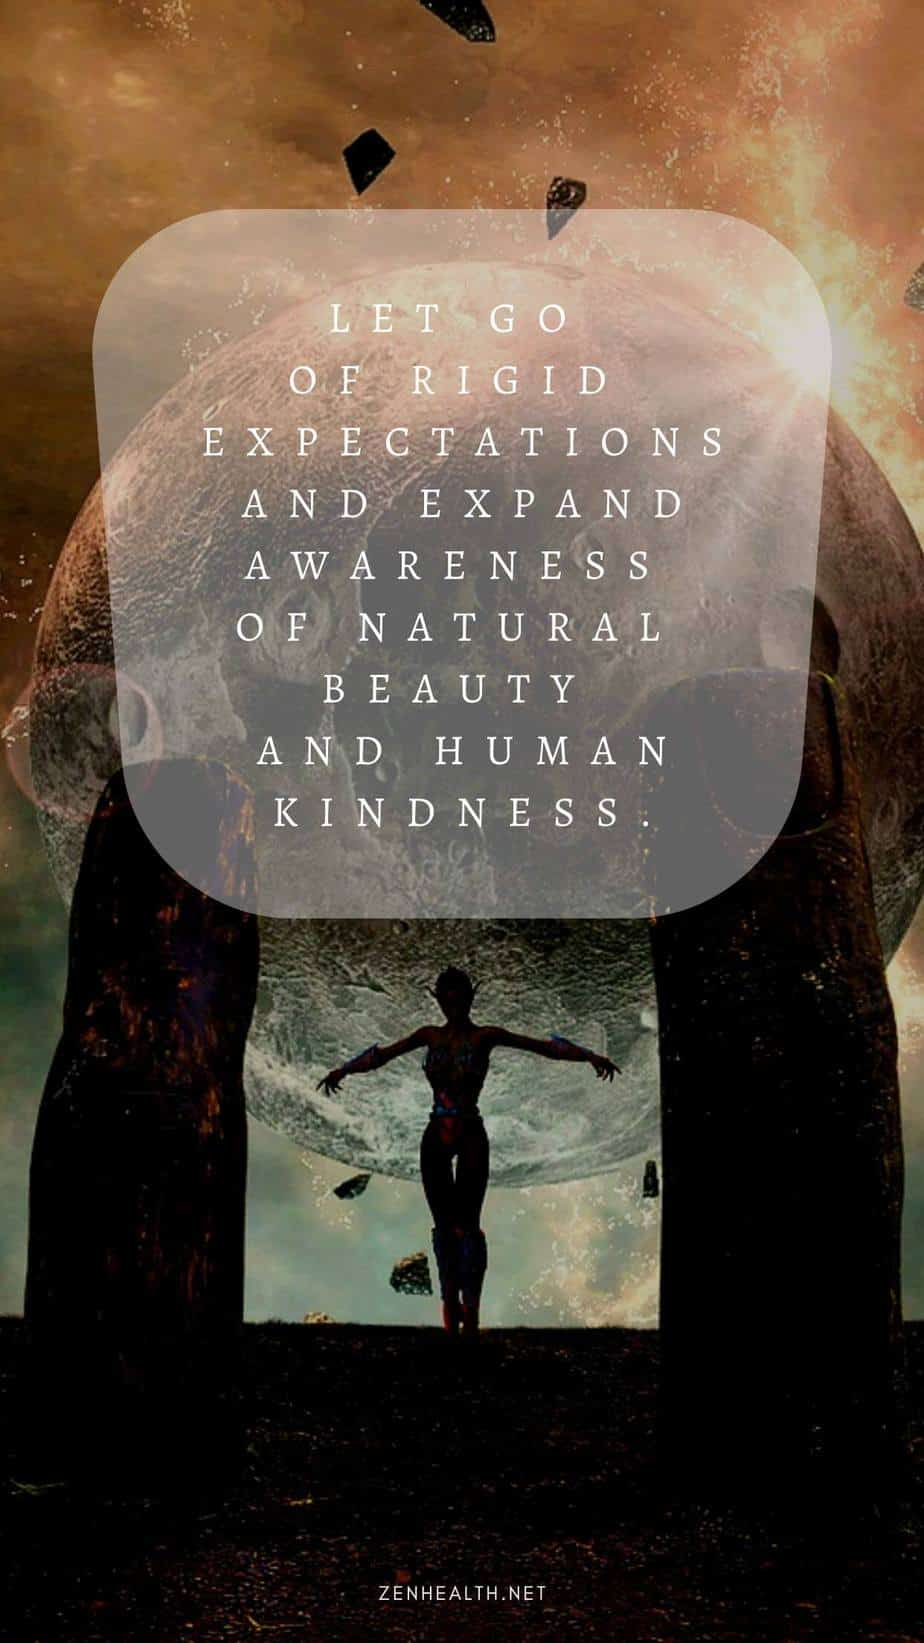 Let go of rigid expectations and expand awareness of natural beauty and human kindness.